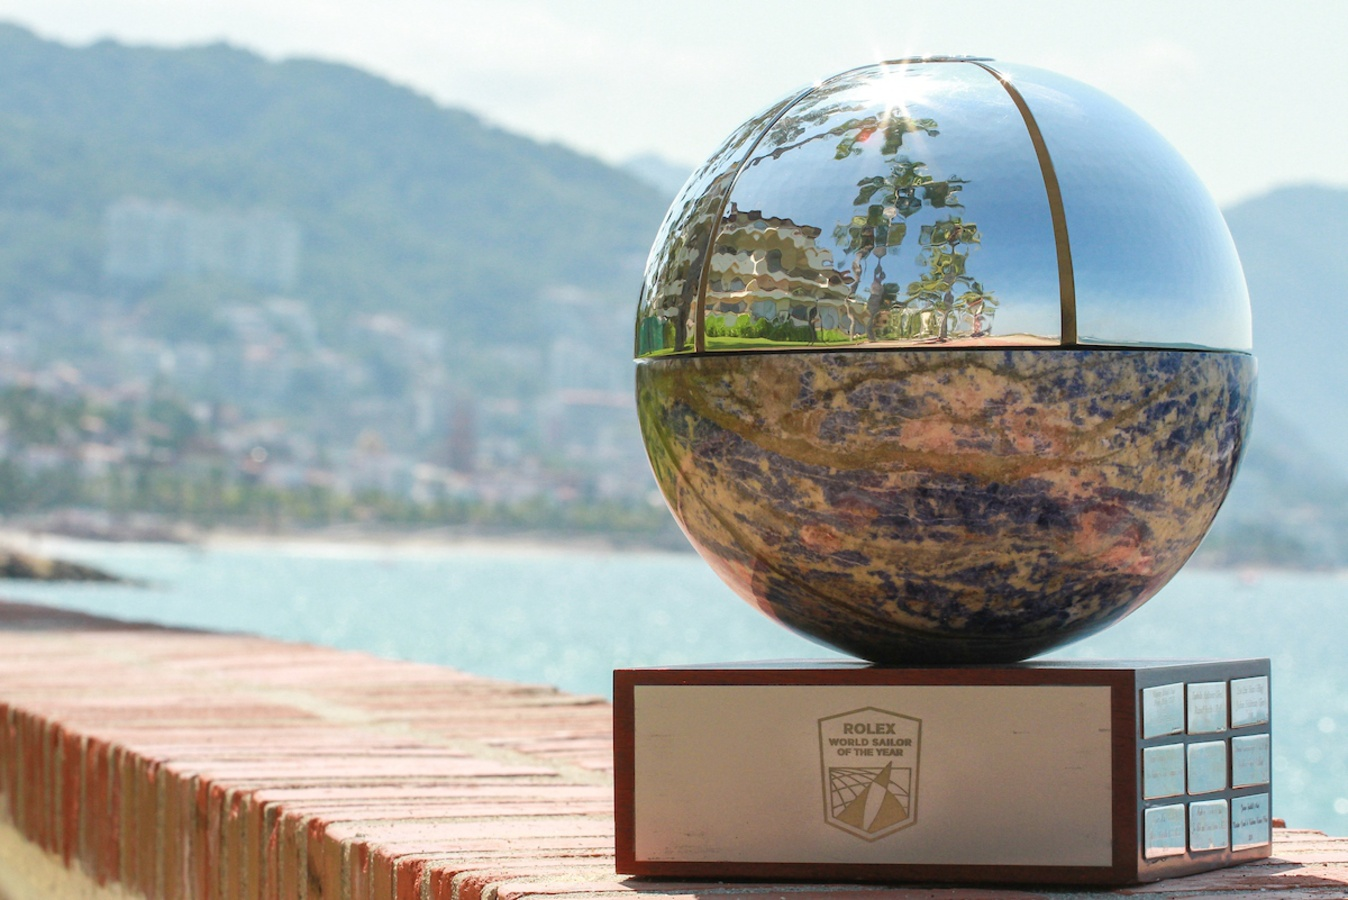 World Sailing and Rolex invite nominations for World Sailor of the Year